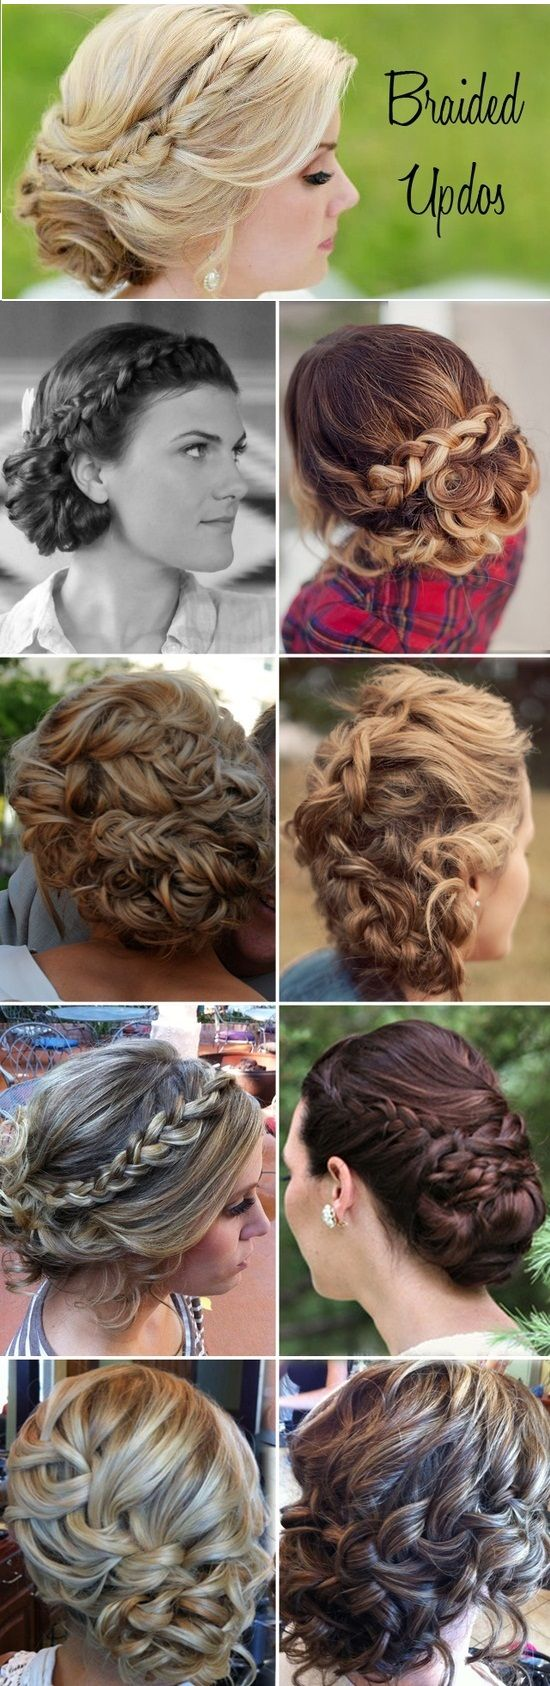 5 latest updo hairstyles updo nice and stuffing 5 latest updo hairstyles pmusecretfo Choice Image